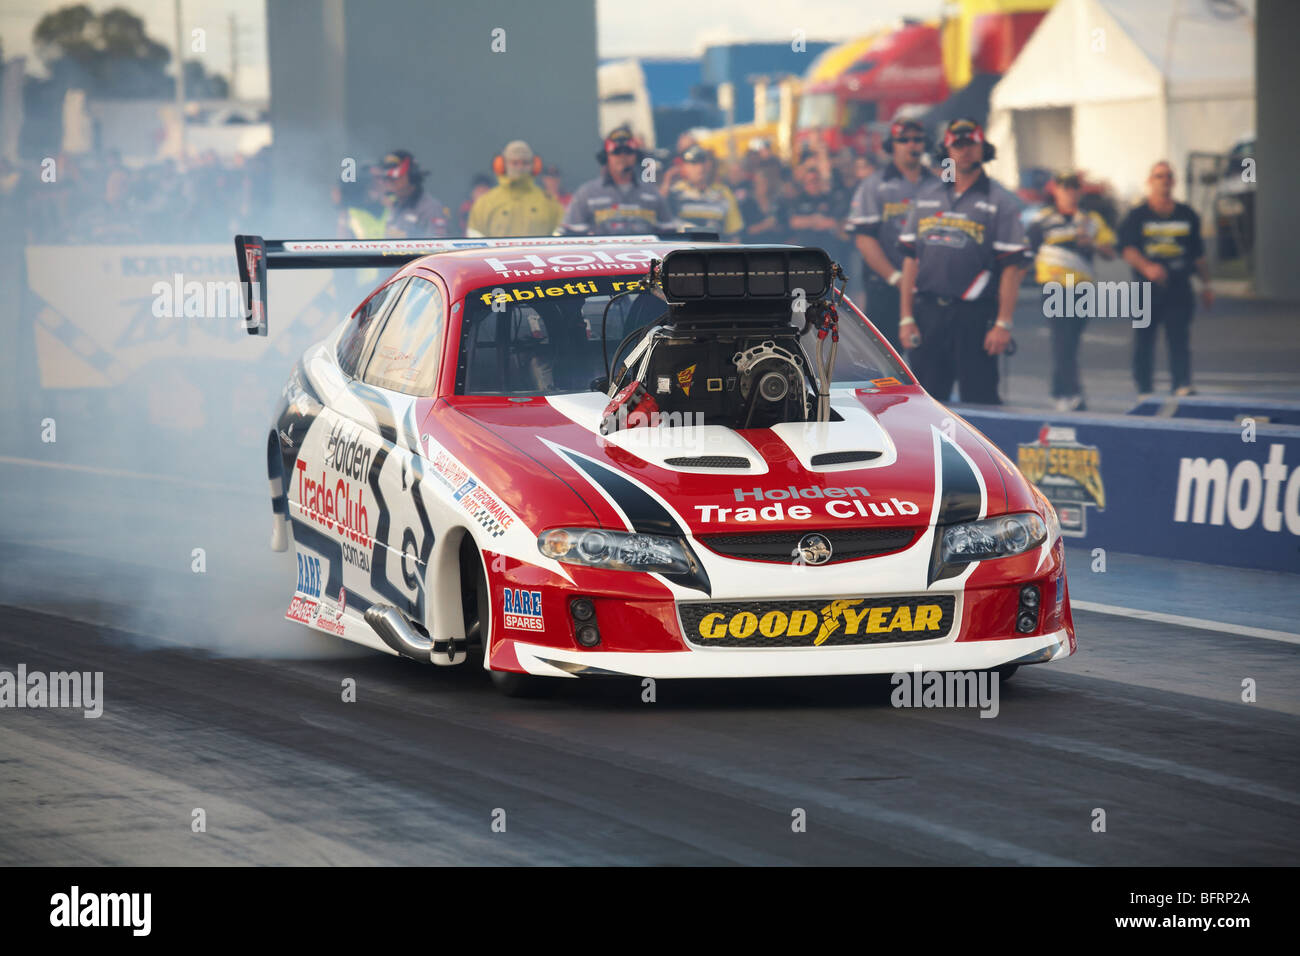 Australian Top Doorslammer driver, Maurice Fabietti, performing a burnout in his supercharged Holden Monaro. Stock Photo